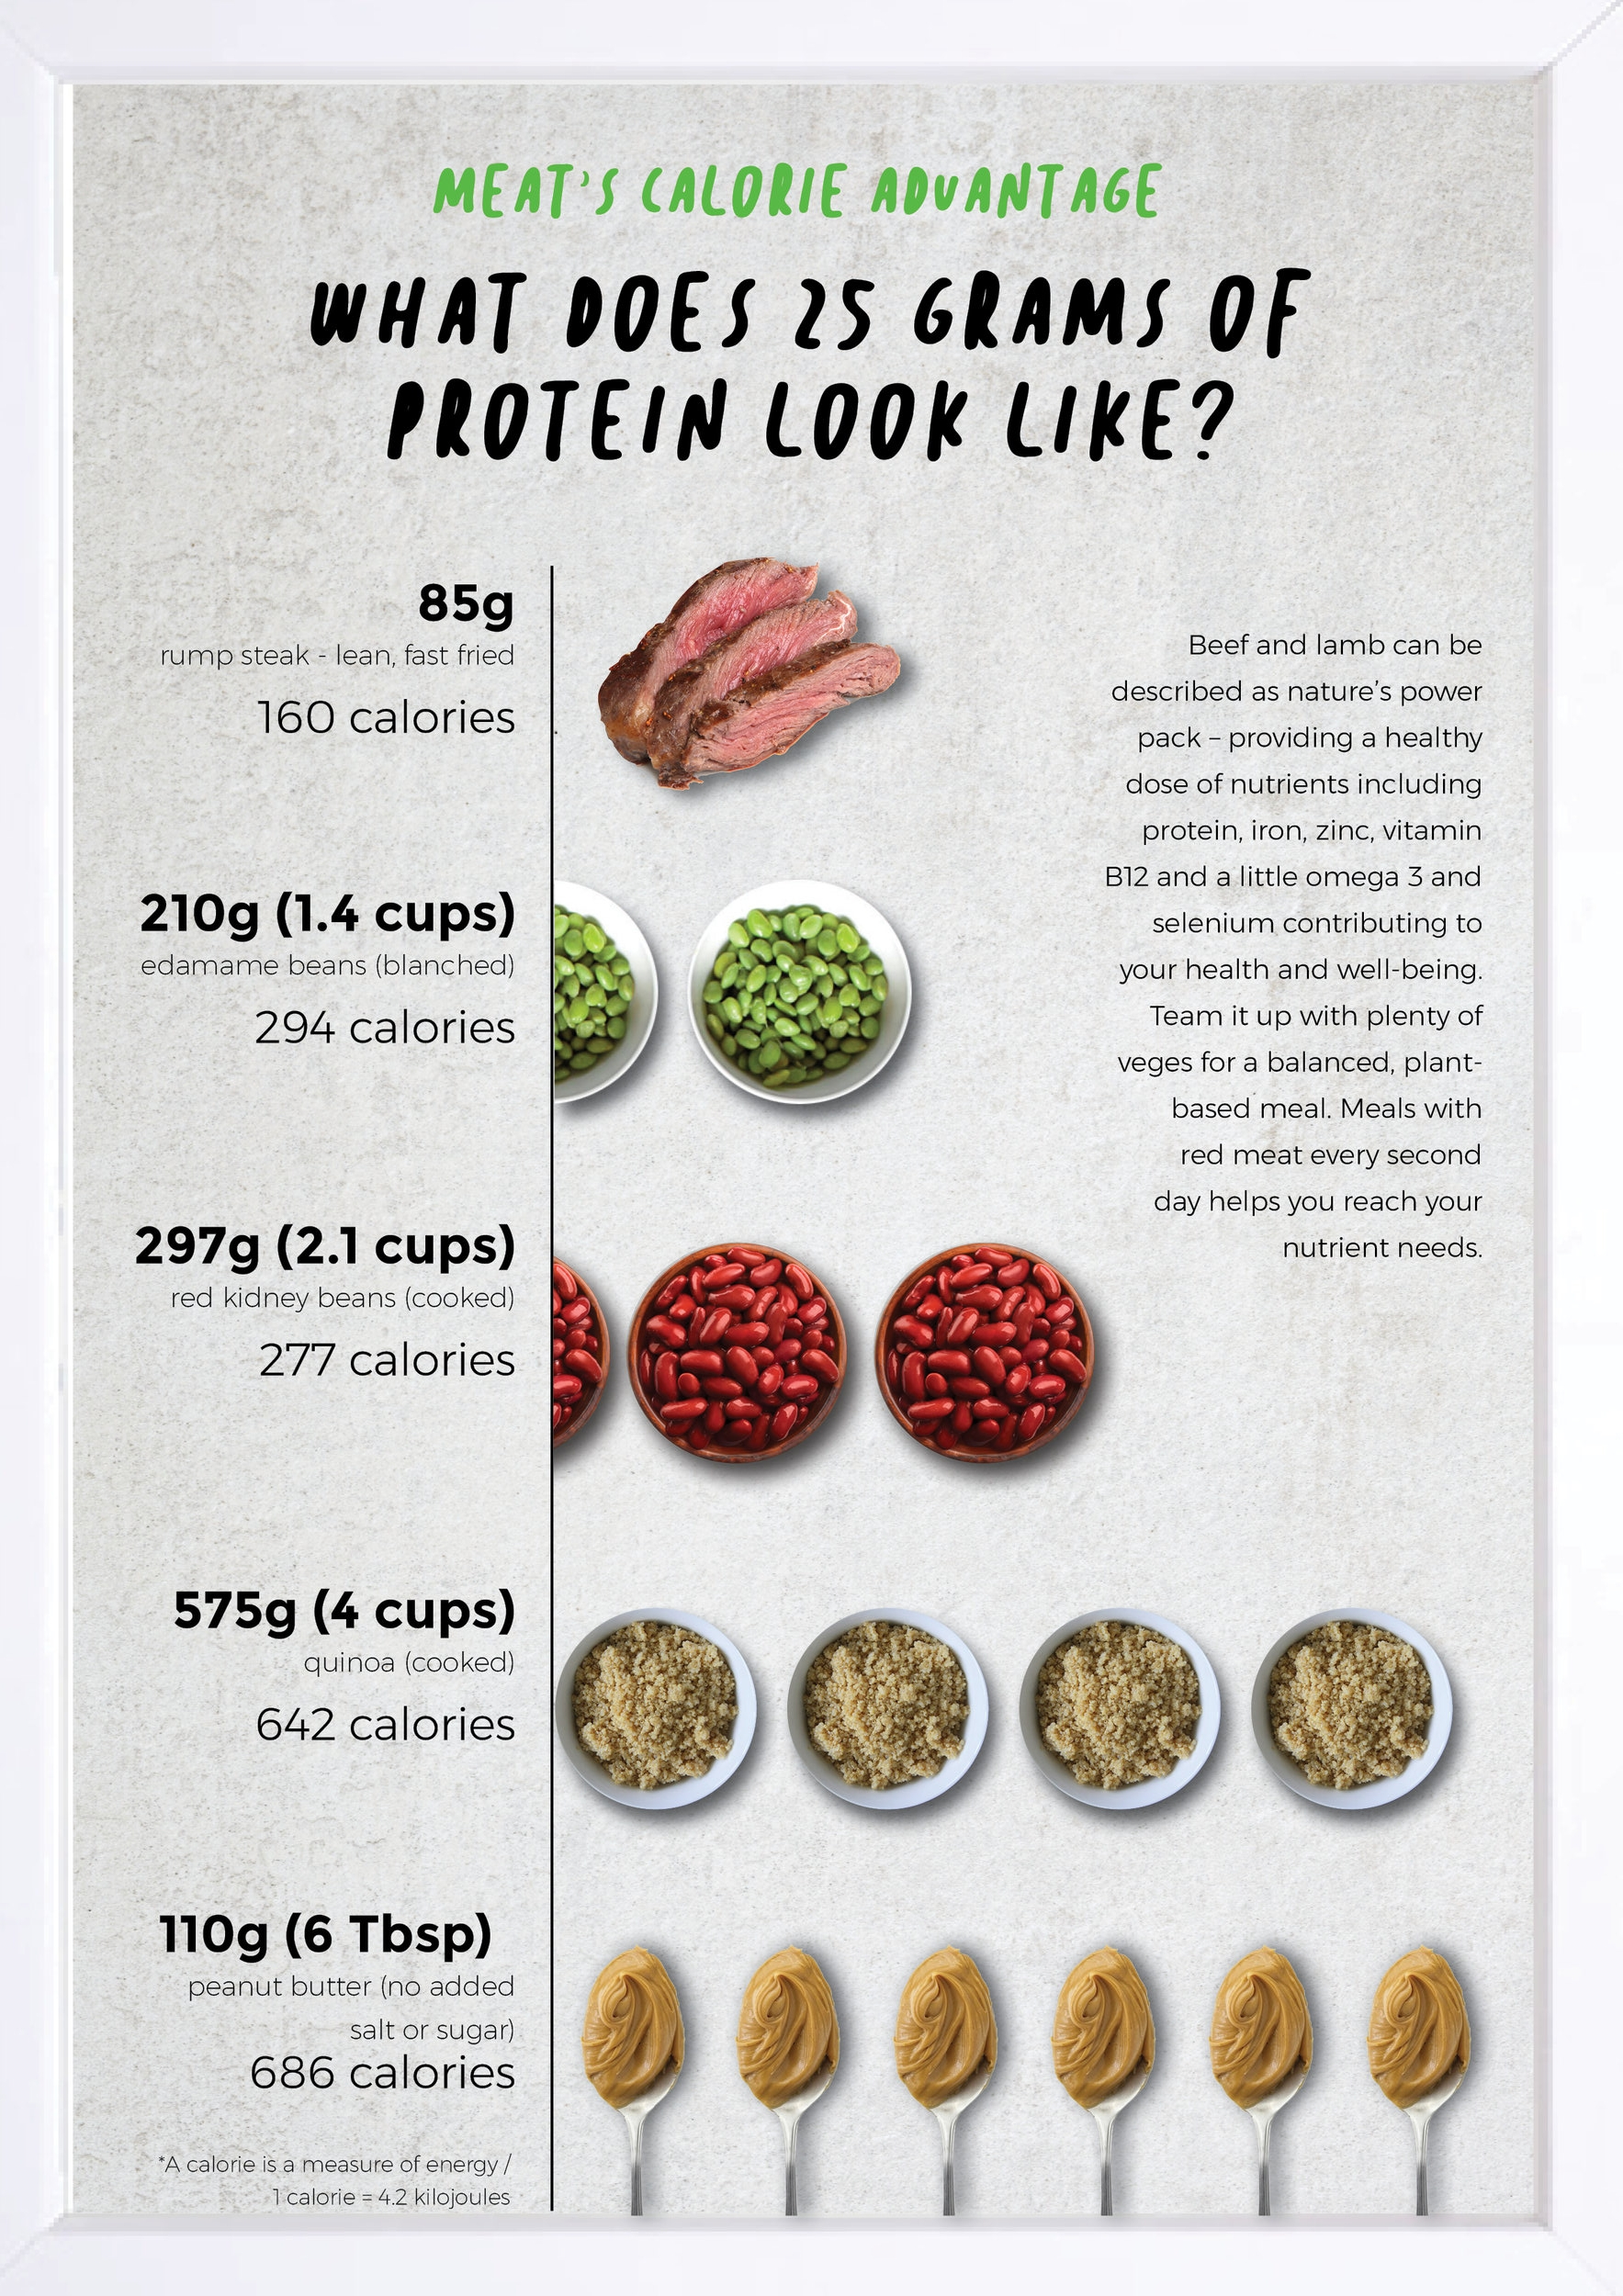 25g protein comparision infographic.jpg